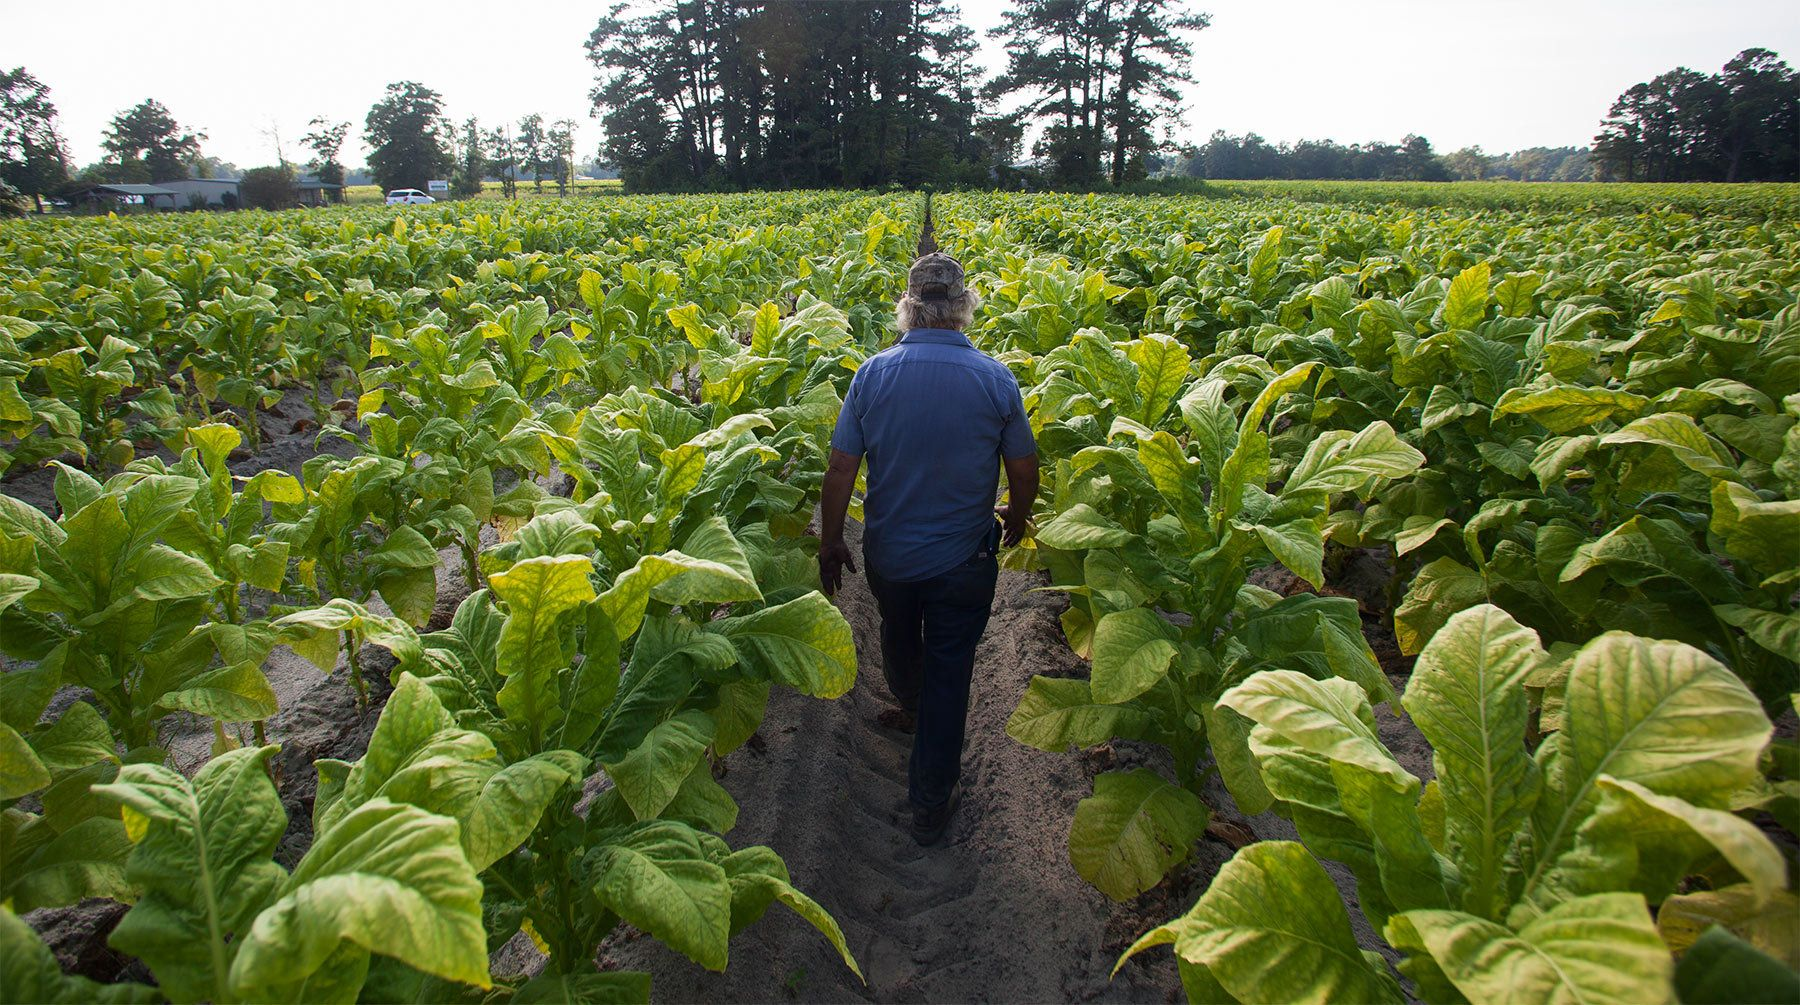 Lester {quote}Buddy{quote} Stroud, a farm hand at Shelley Farms, walks through a field of tobacco ready to be harvested in the Pleasant View community of Horry County, South Carolina July 26, 2013. The traditional tobacco harvest requires many labor intensive hours to bring the crop to market, especially with the flue-cured variety prominent in the southern United States. With the growing health concerns with smoking in the US, most farmers use market cooperatives to sell their crop to the growing markets in China. Picture taken on July 26, 2013.   REUTERS/Randall Hill (UNITED STATES)